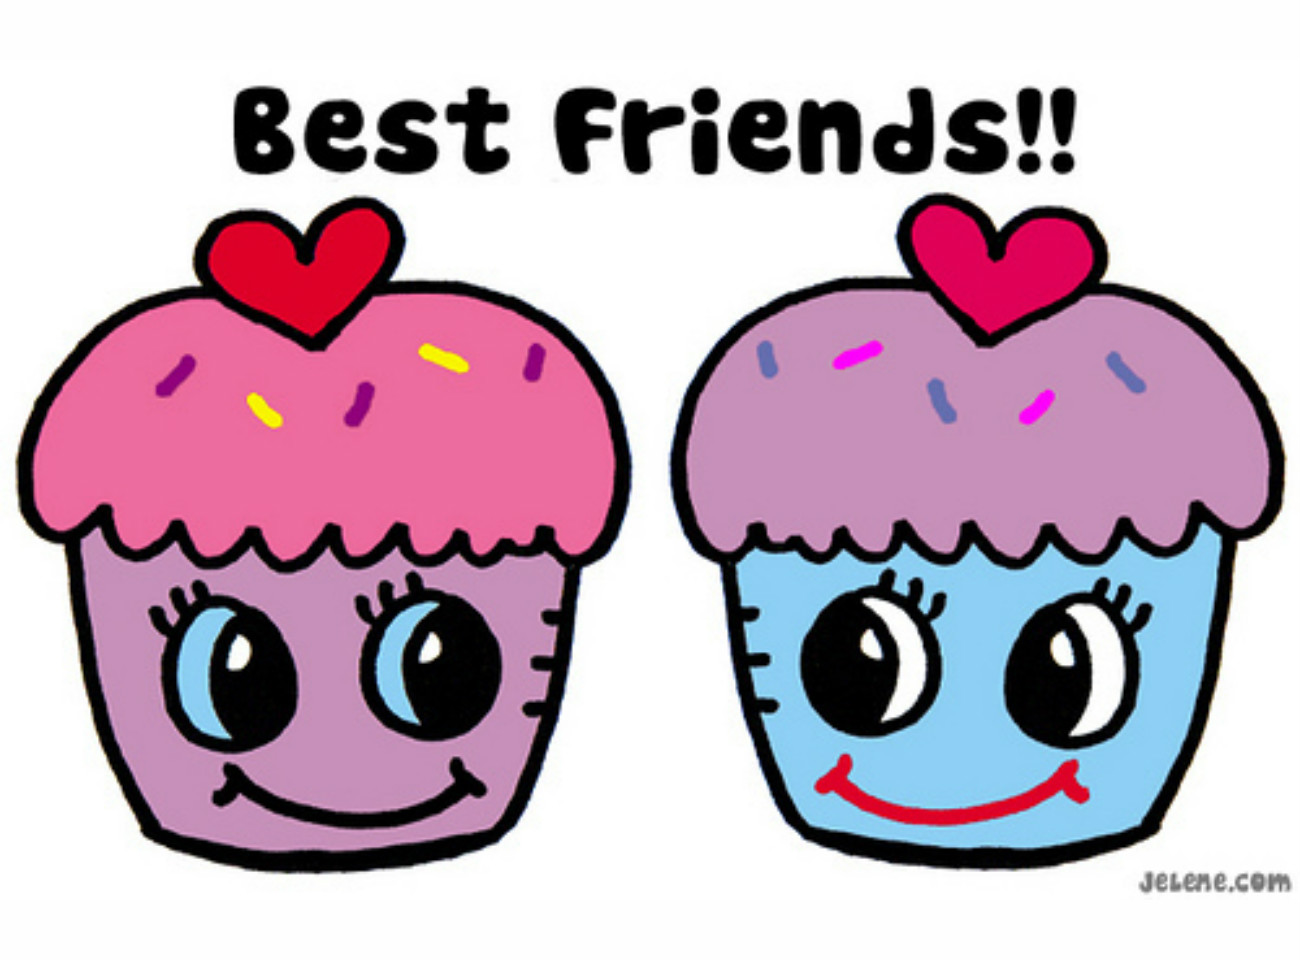 Friendship clipart bff. Free heart cliparts download